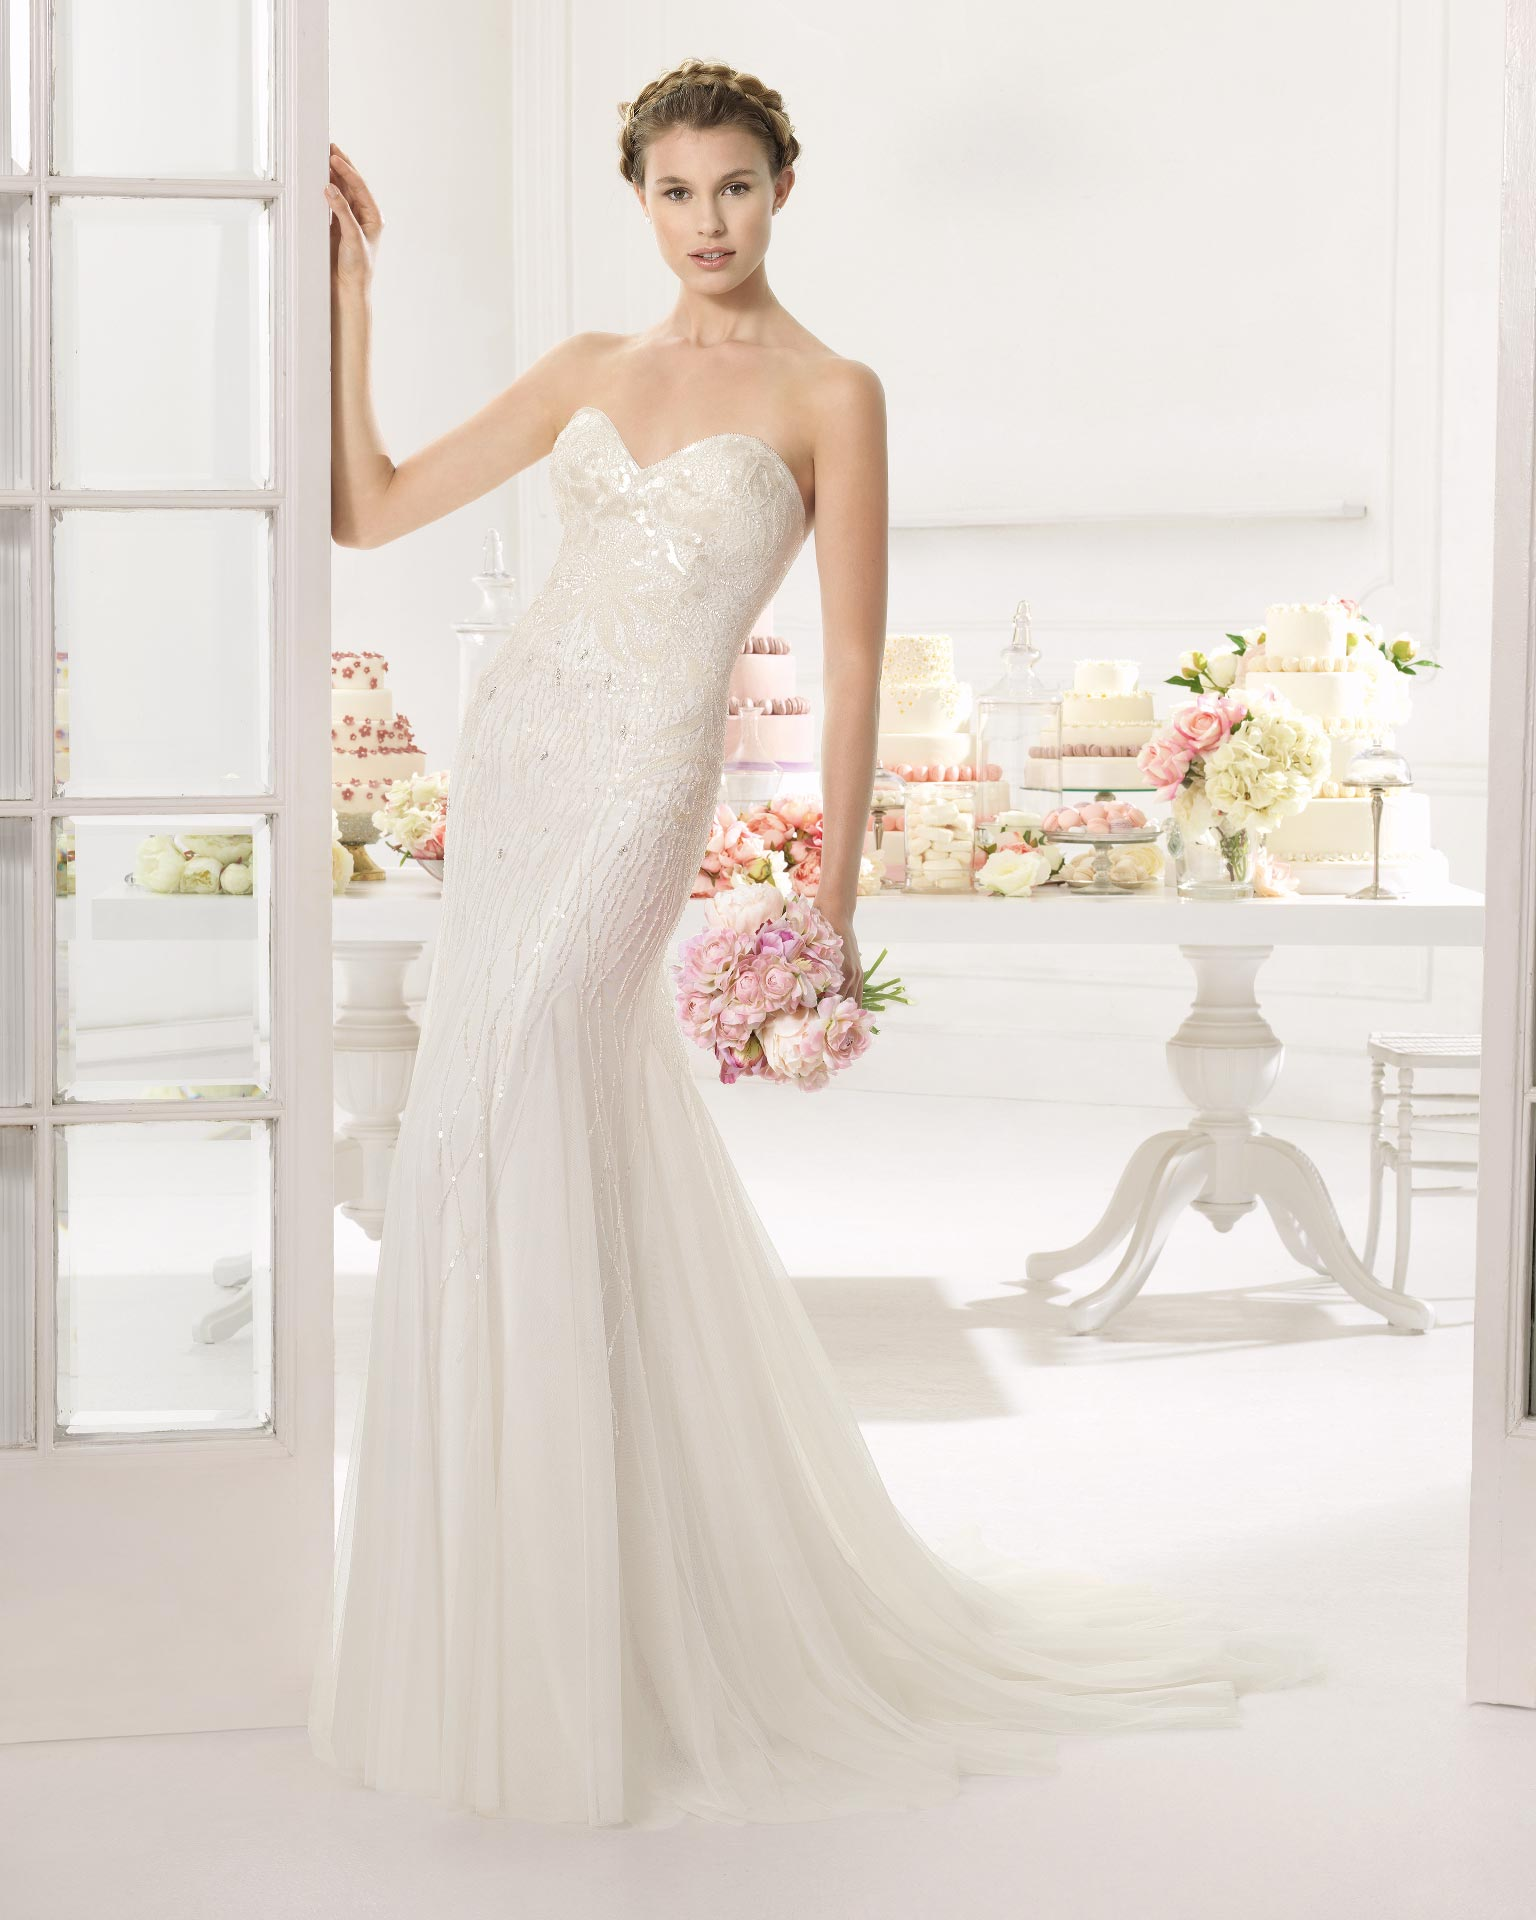 Wedding Gowns Chicago: Ainoa By Aire Barcelona